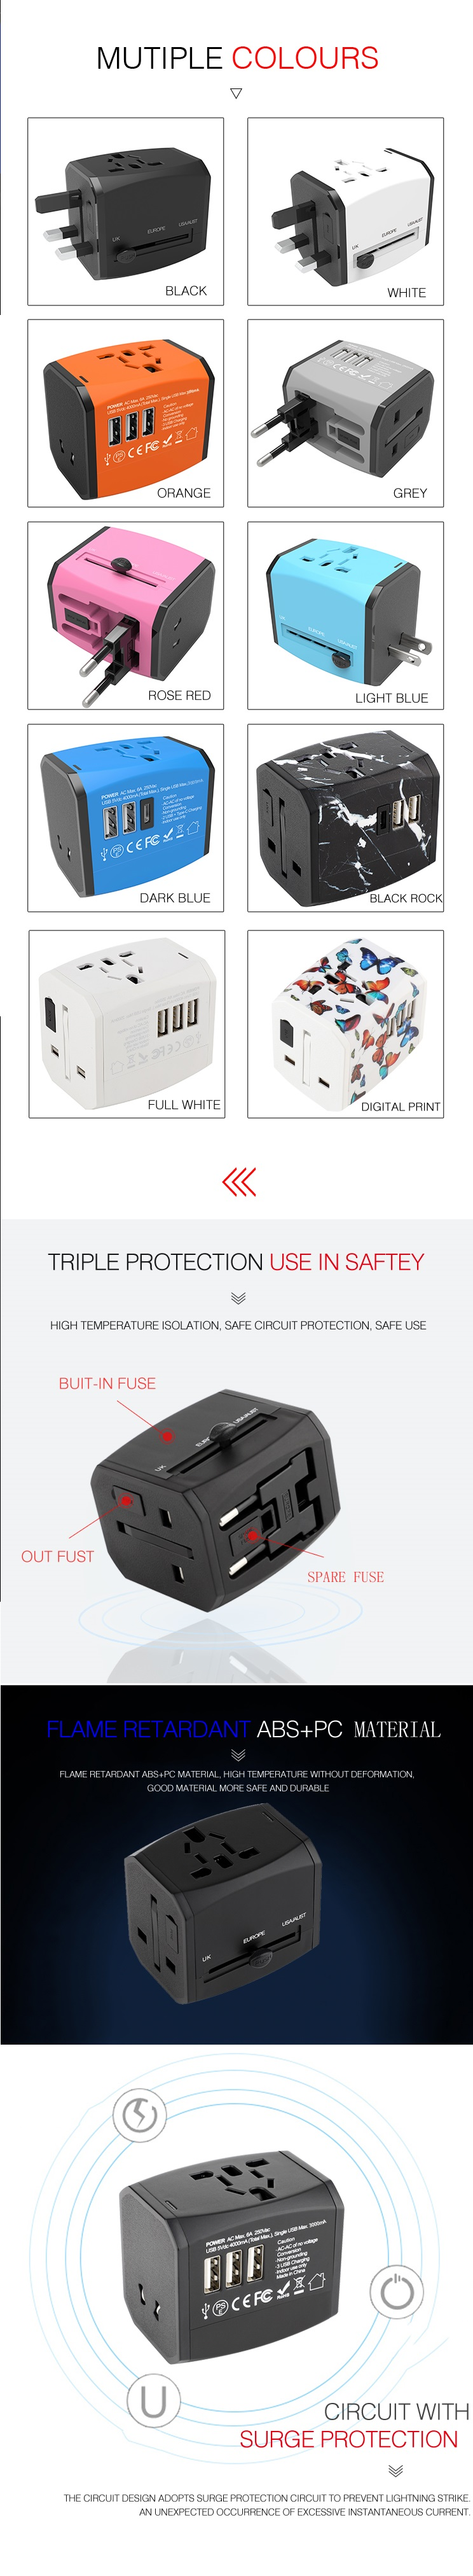 BS8546 certificated universal travel adapter with 3 usb ports with QC3.0 quick charge power adapter